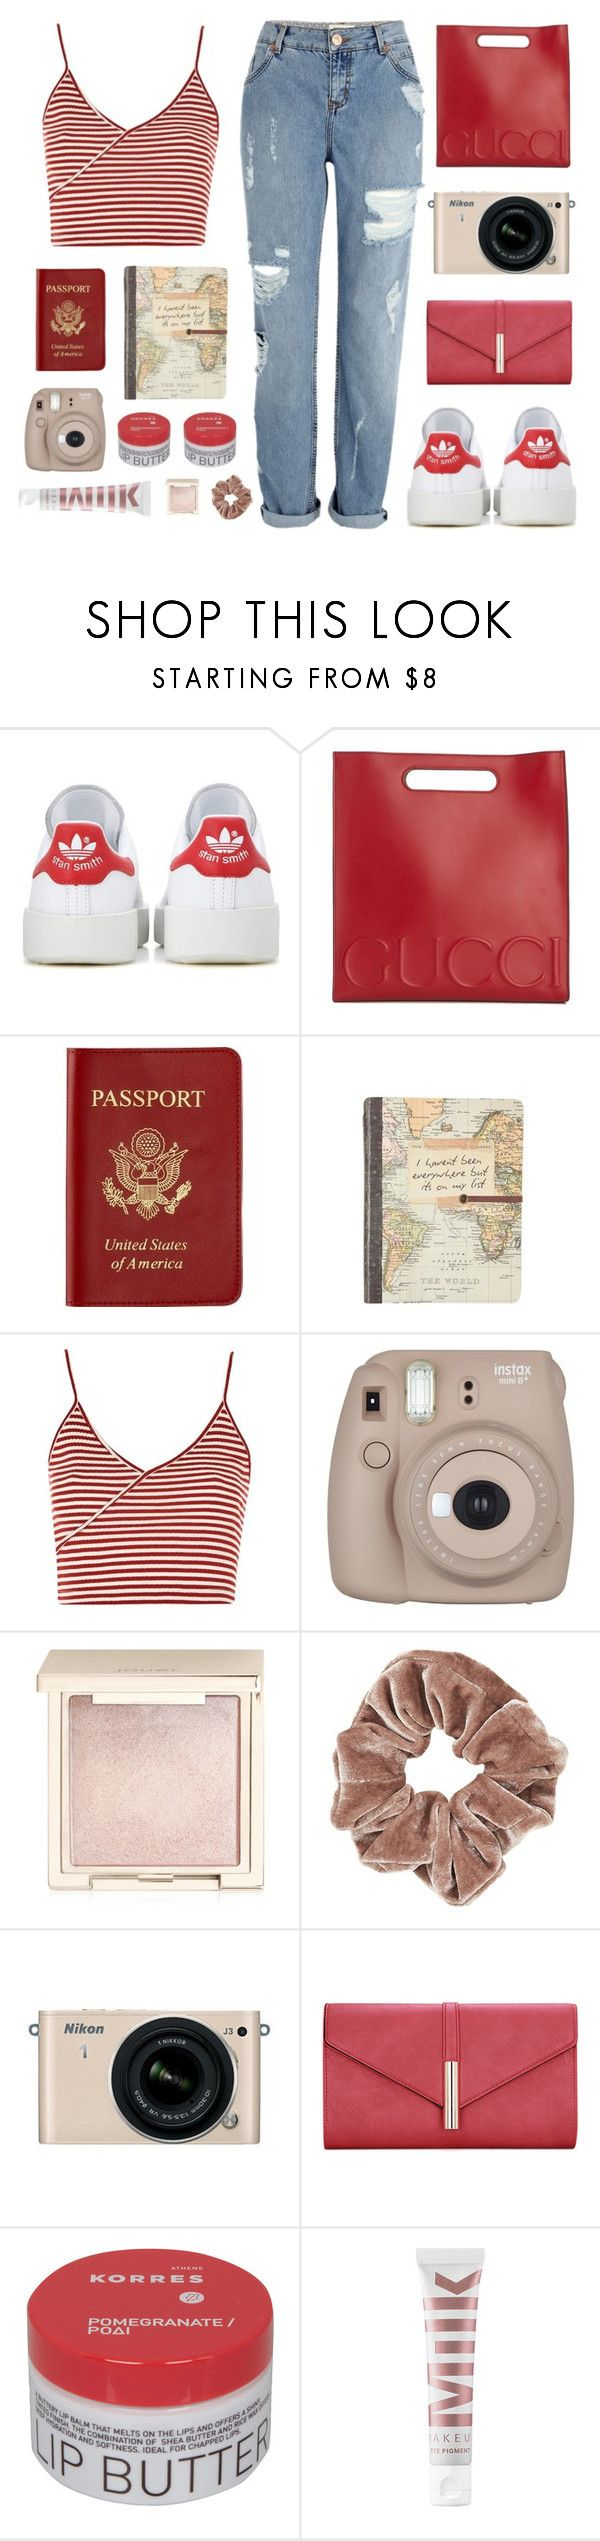 """""""Road Trip Comfort"""" by amazing-abby on Polyvore featuring adidas Originals, Gucci, Passport, Topshop, Fujifilm, Jouer, Nikon, Korres, MILK MAKEUP and River Island"""